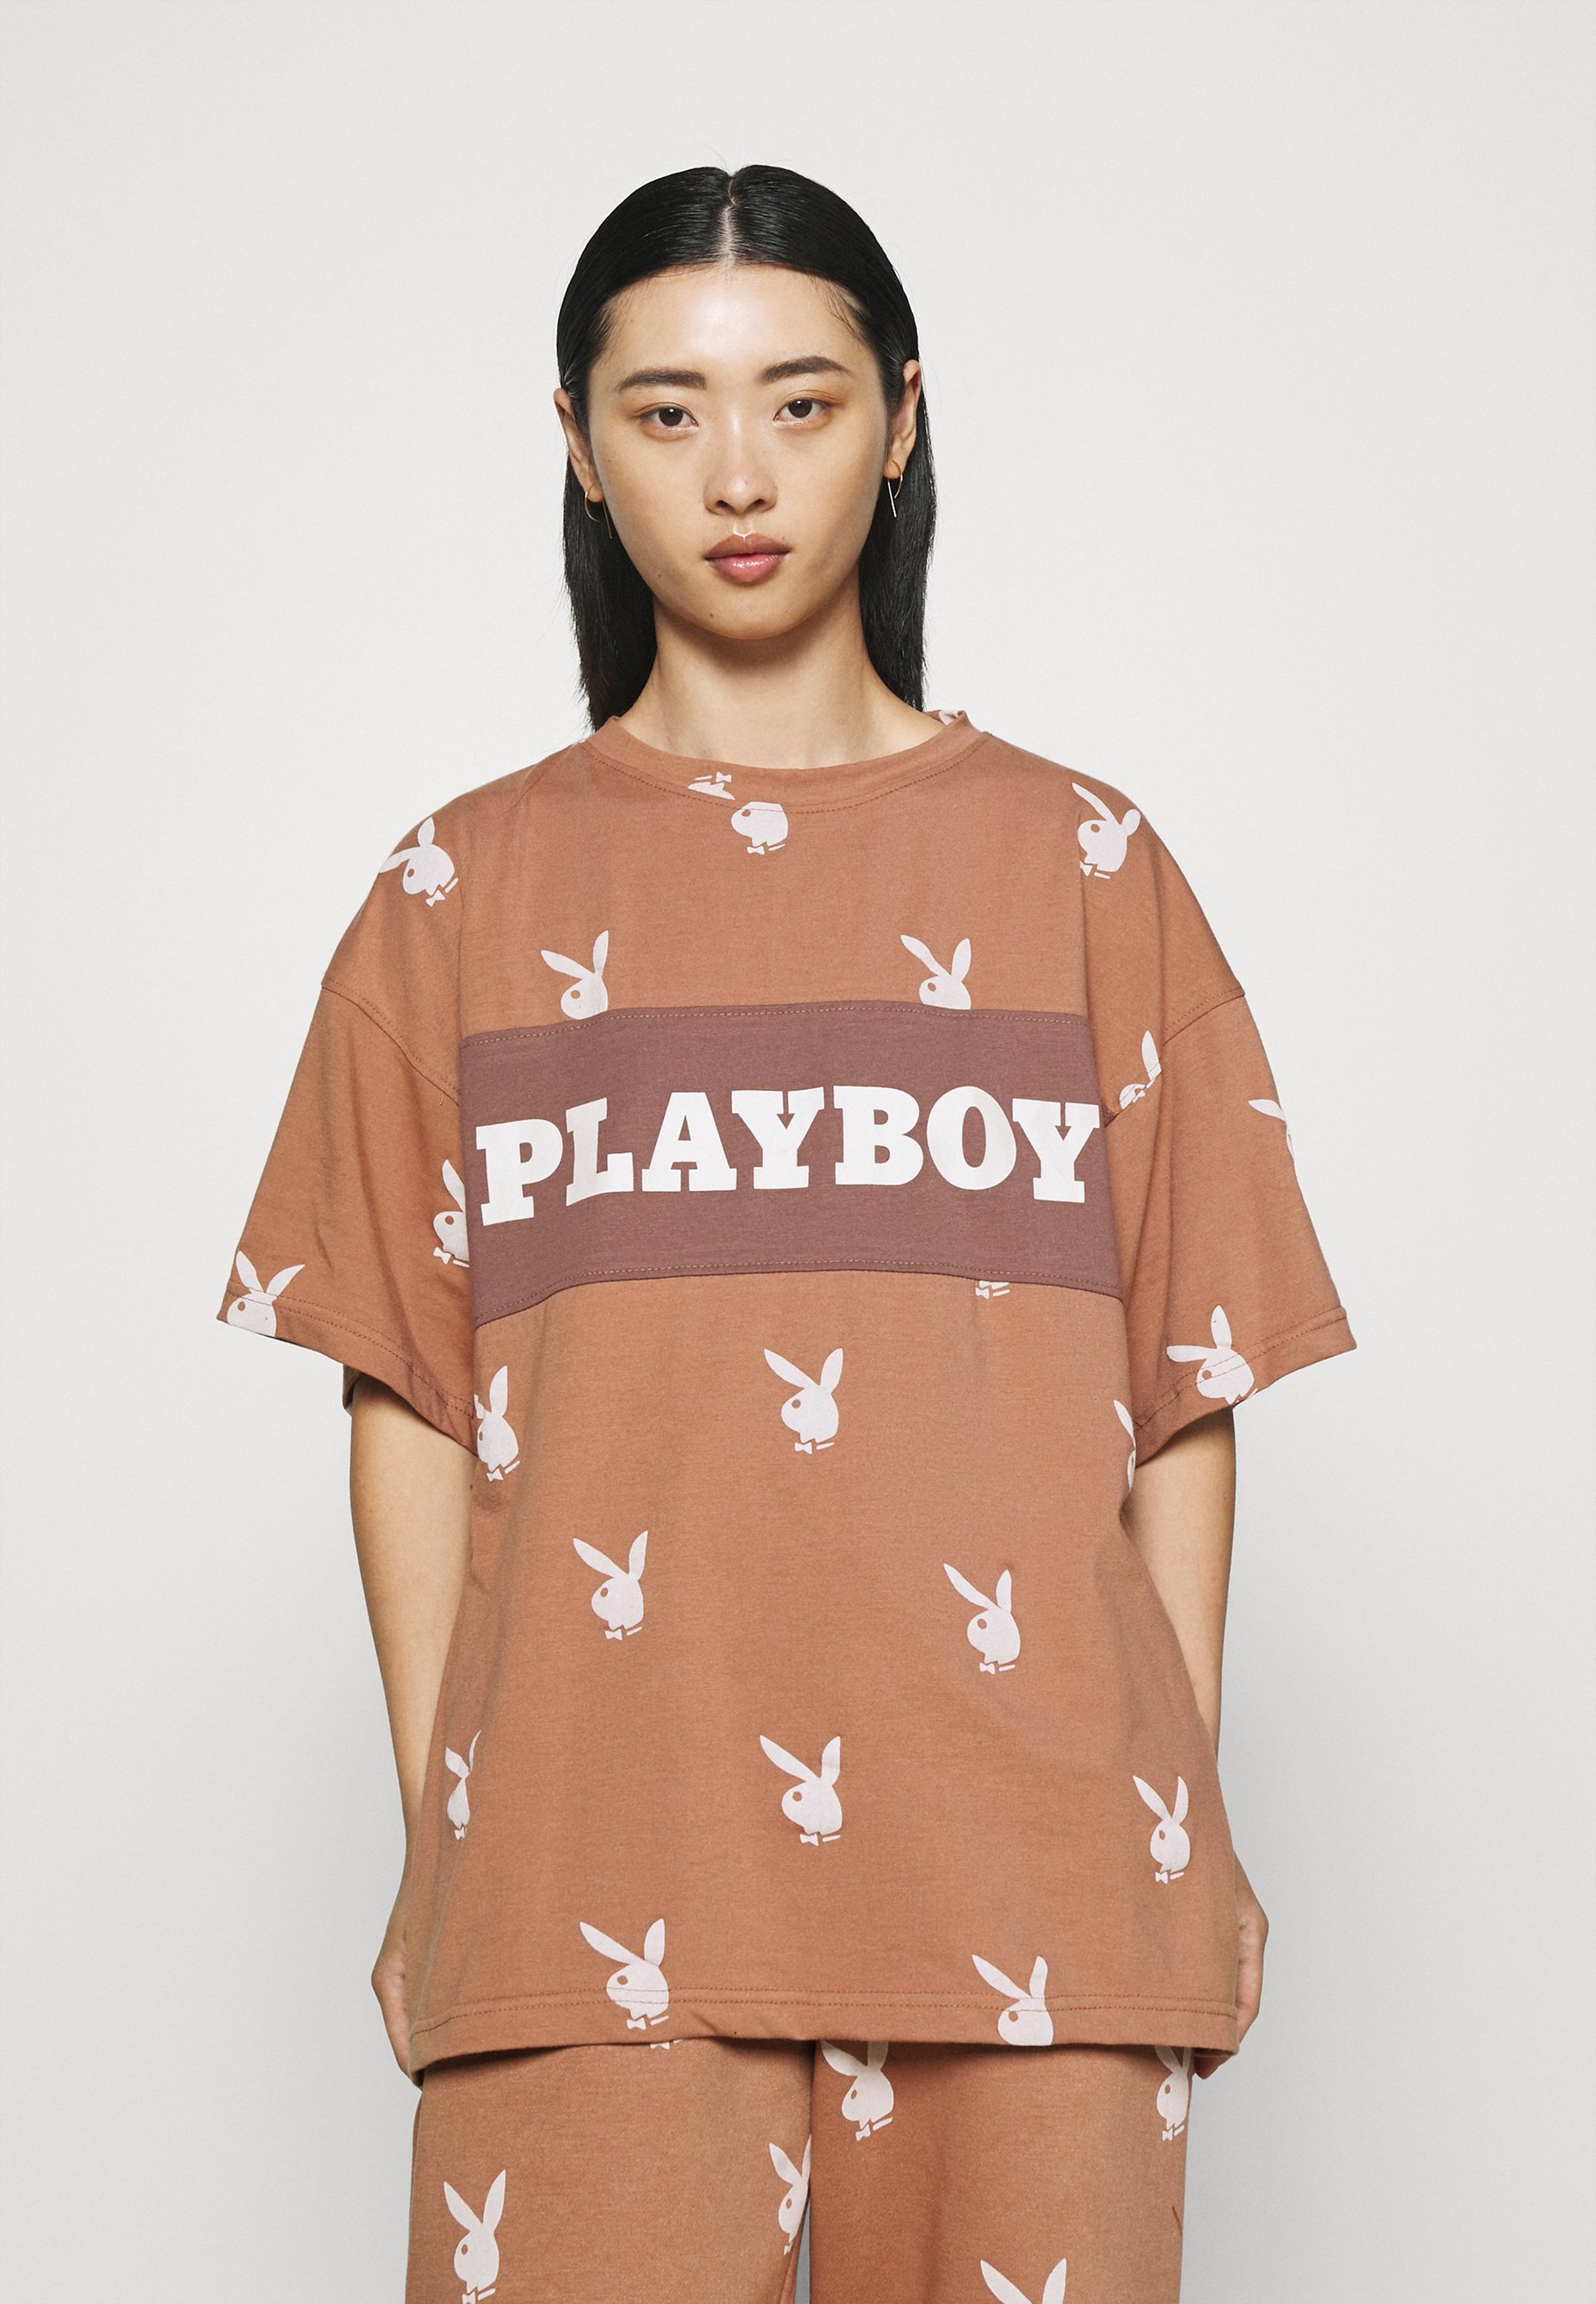 Donna PLAYBOY OVERSZIED SHIRT - T-shirt con stampa